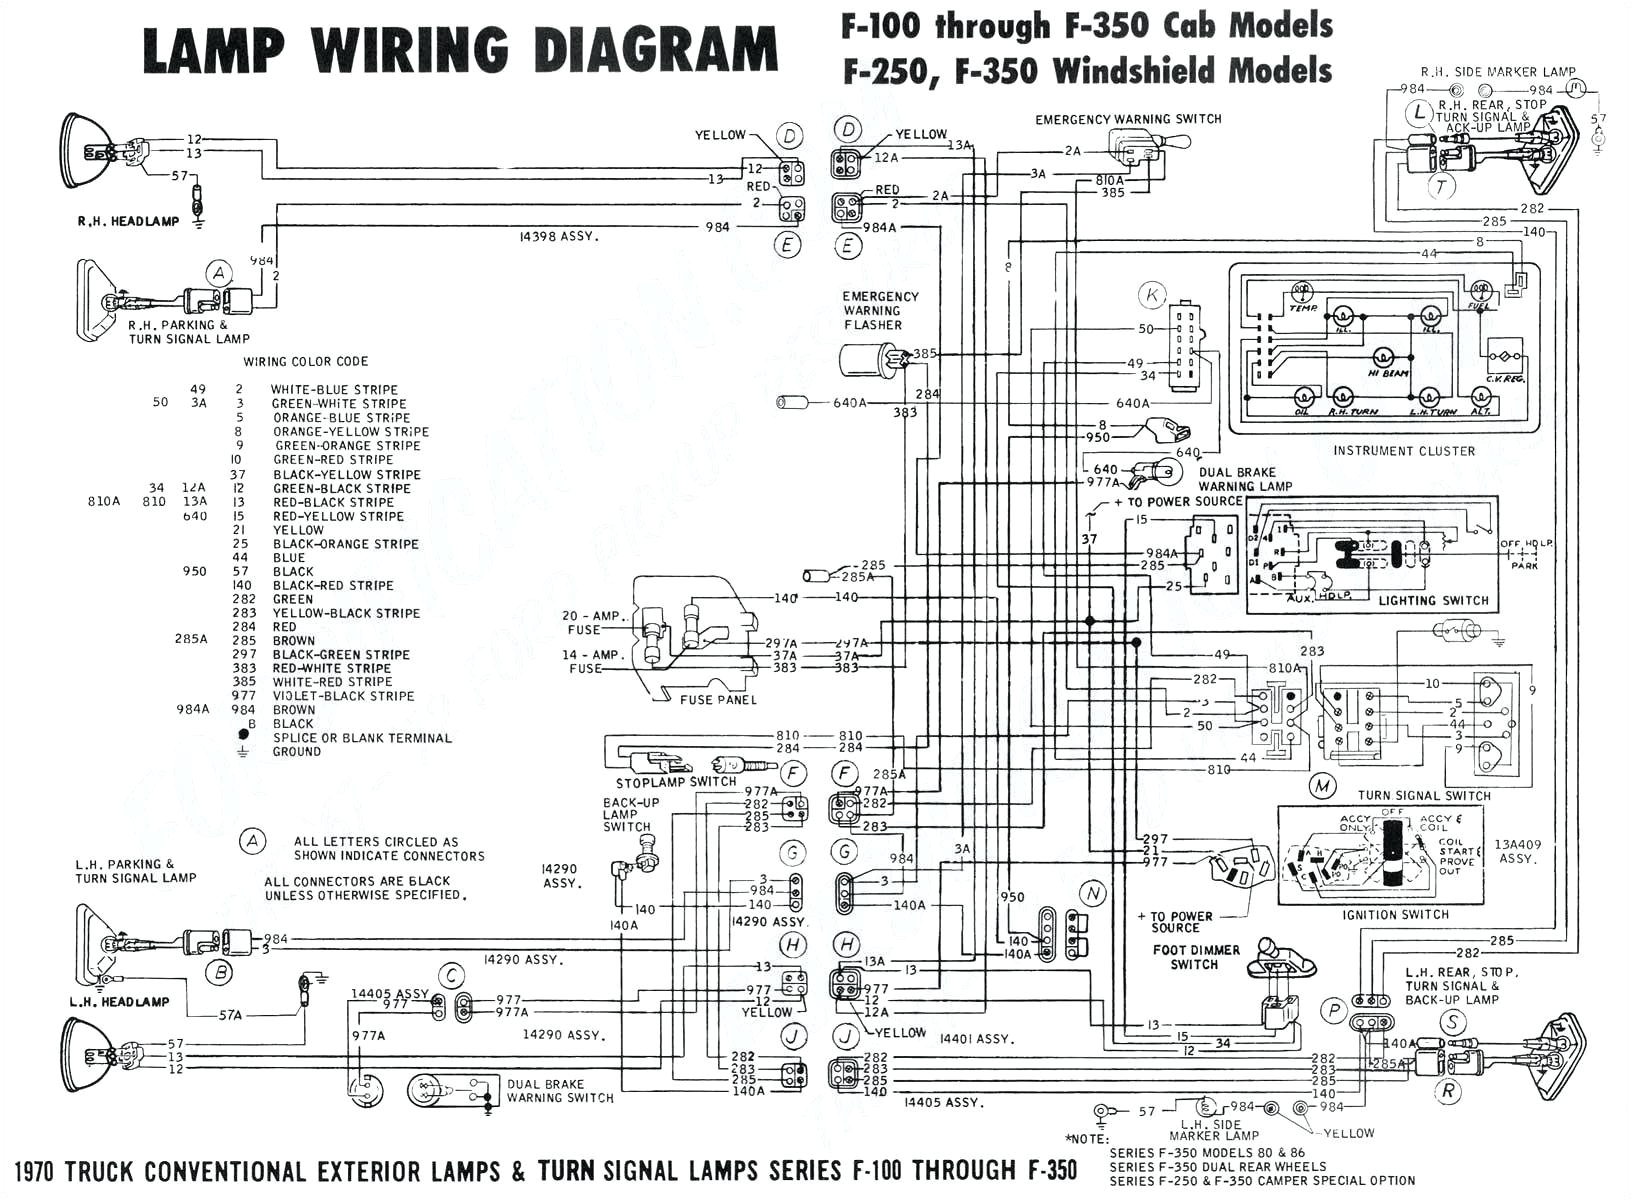 tail light wiring diagram ford f150 wiring diagram for automotive lights new stop turn tail light wiring diagram beautiful 1979 ford f150 17r jpg